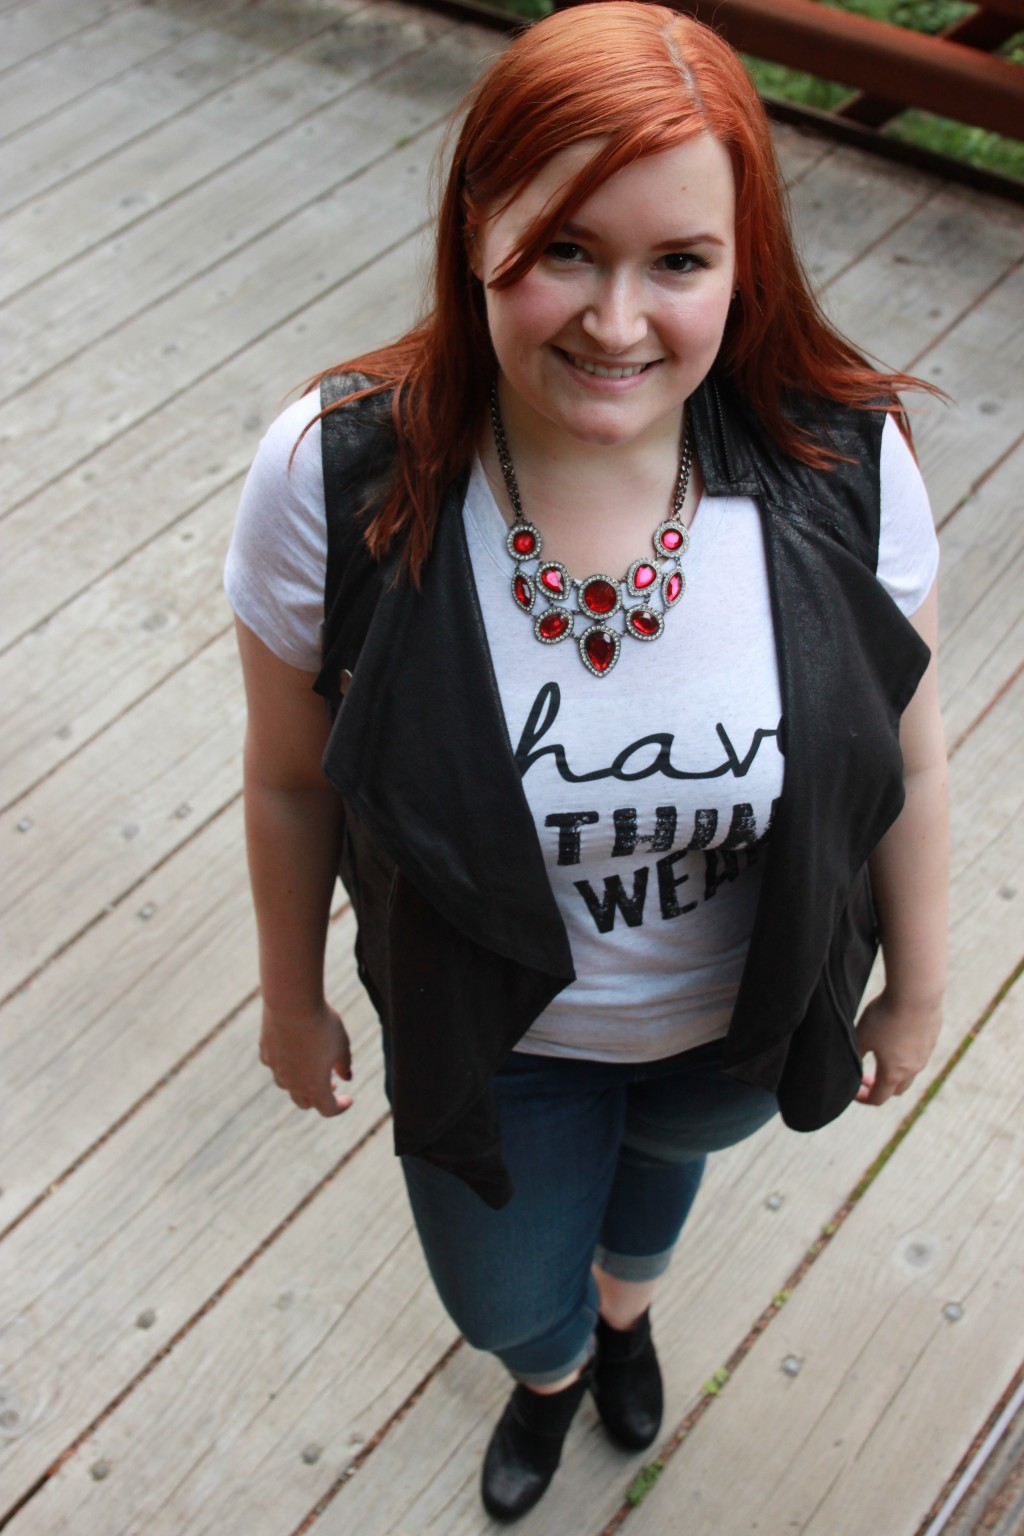 Styling cropped jeans, booties, and a motorcycle vest